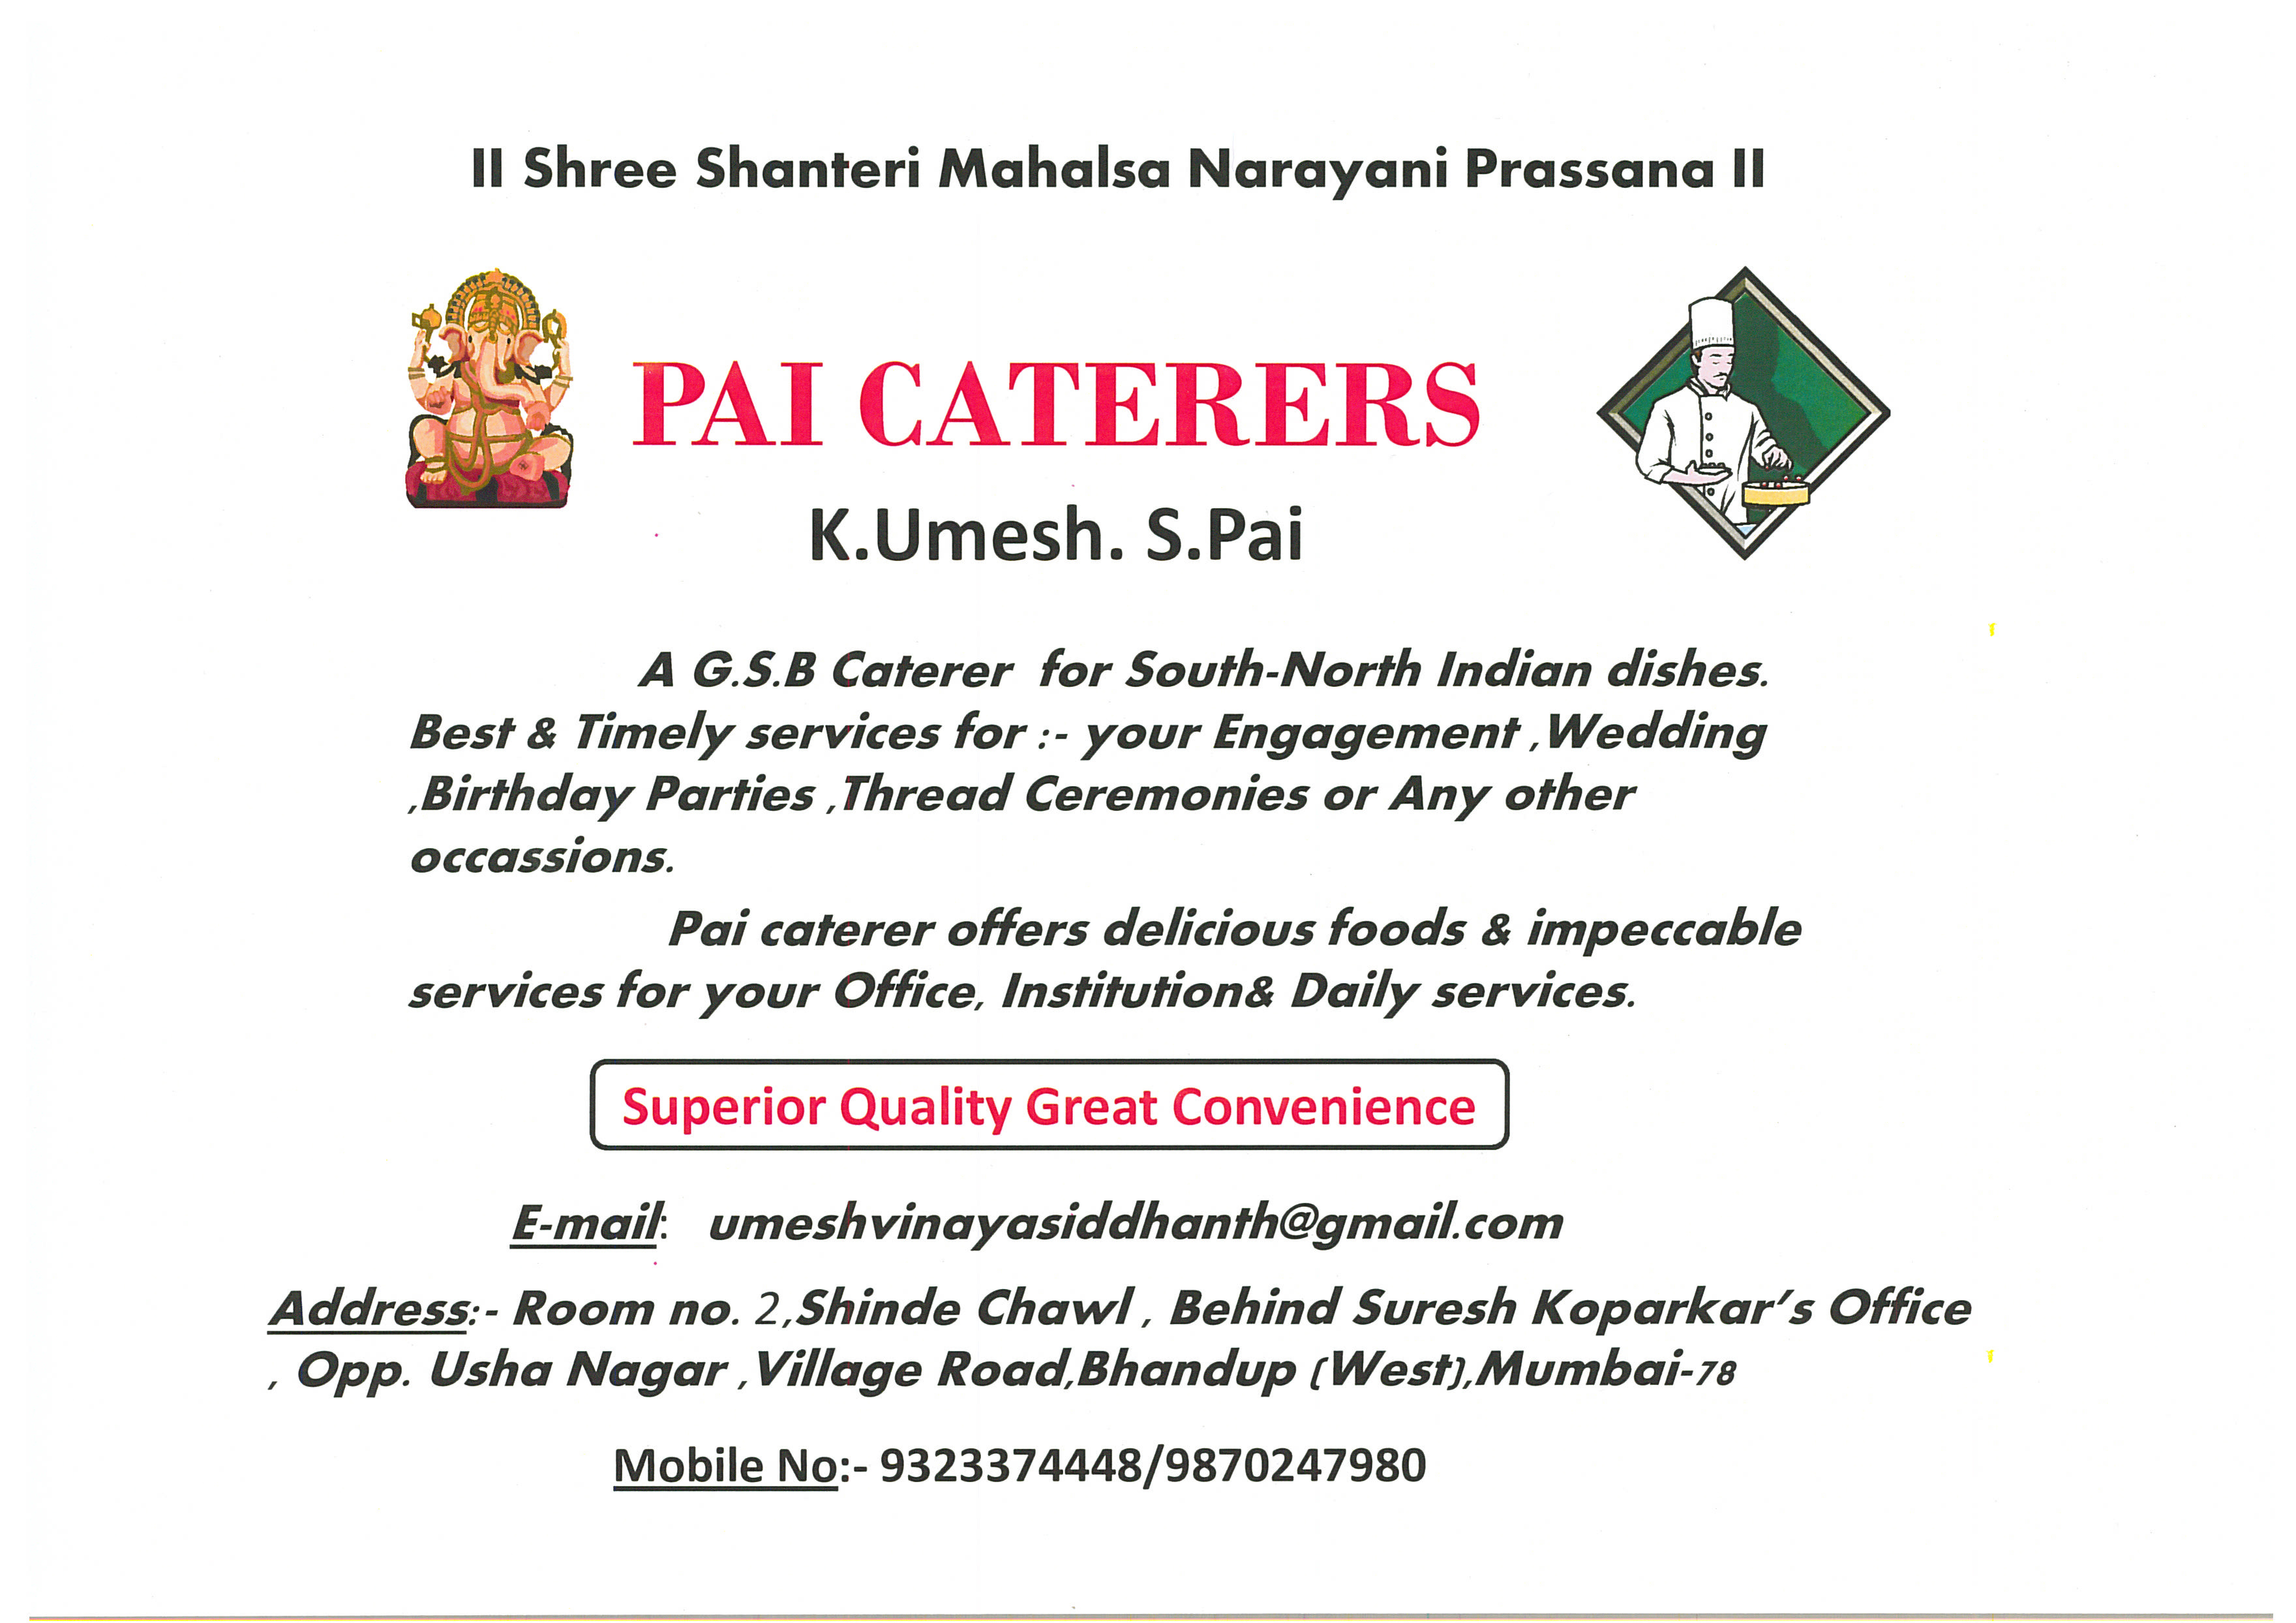 Pai Caterers